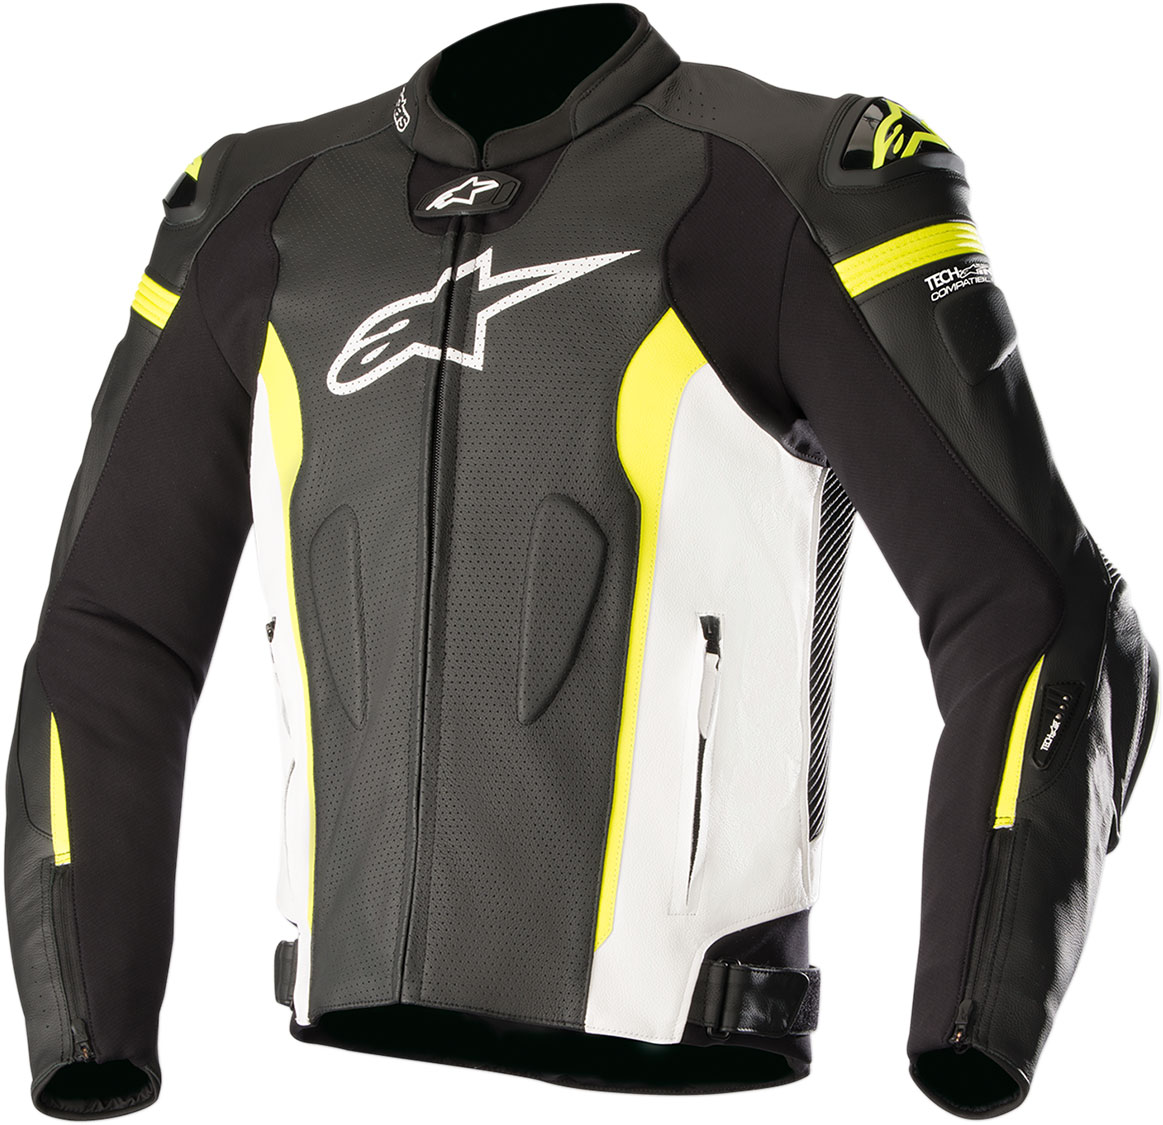 Alpinestars MISSILE Leather Jacket Tech-Air Compatible (Black/White/Flo Yellow)